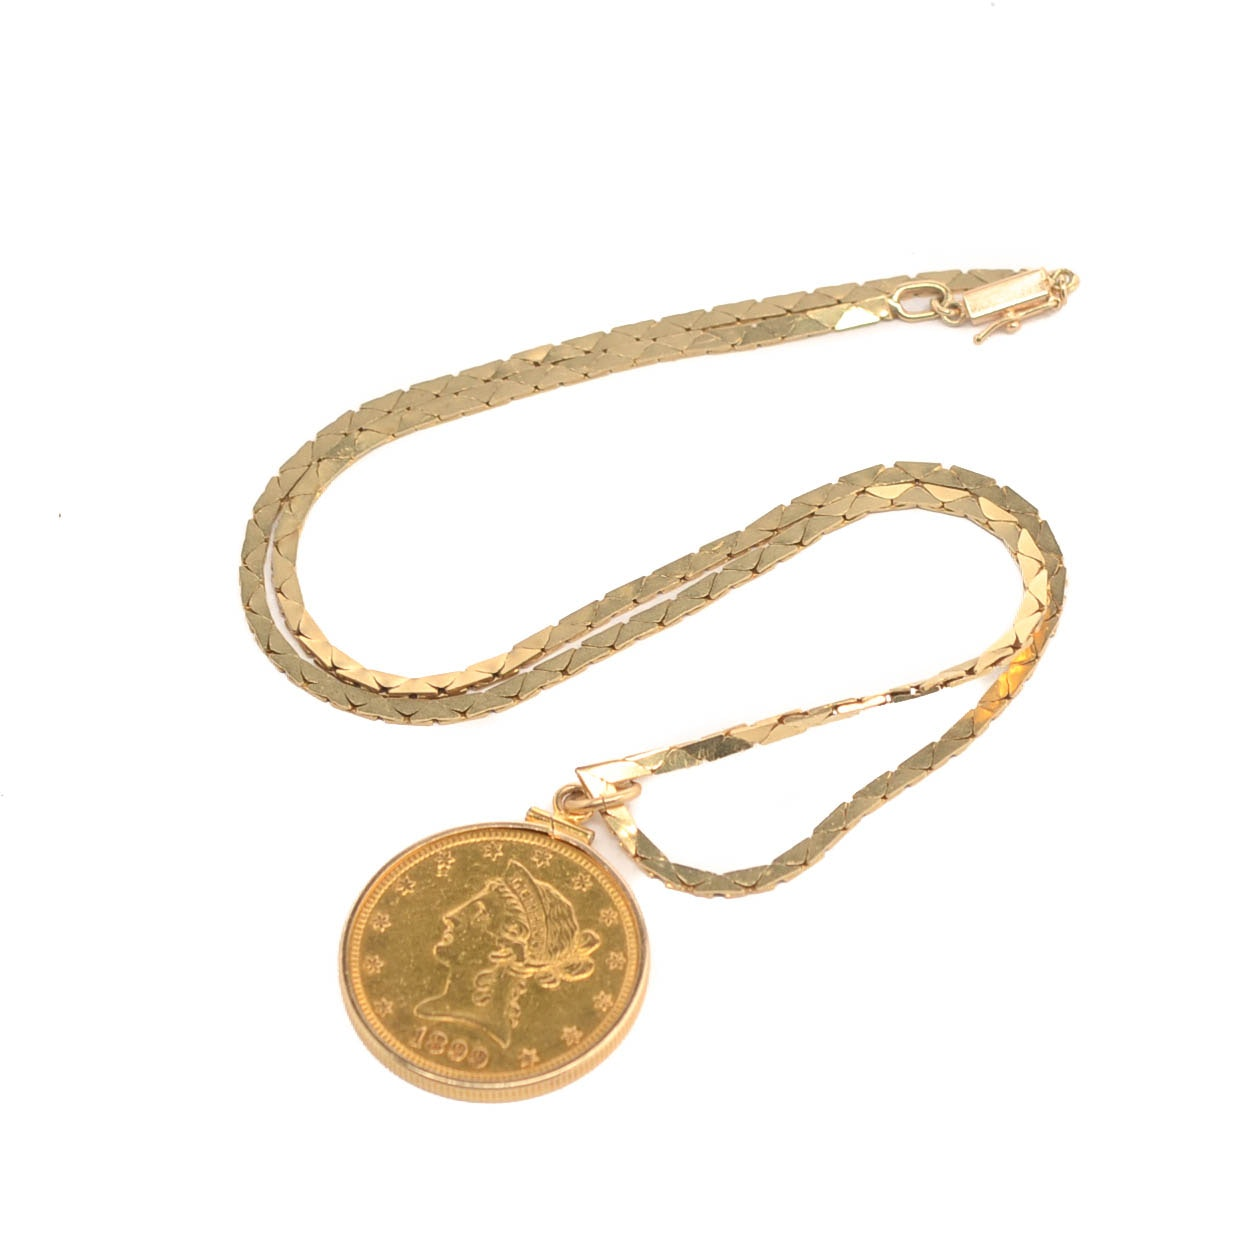 1899-S Liberty Head $10 Gold Coin with 14K Yellow Gold Bezel and Chain